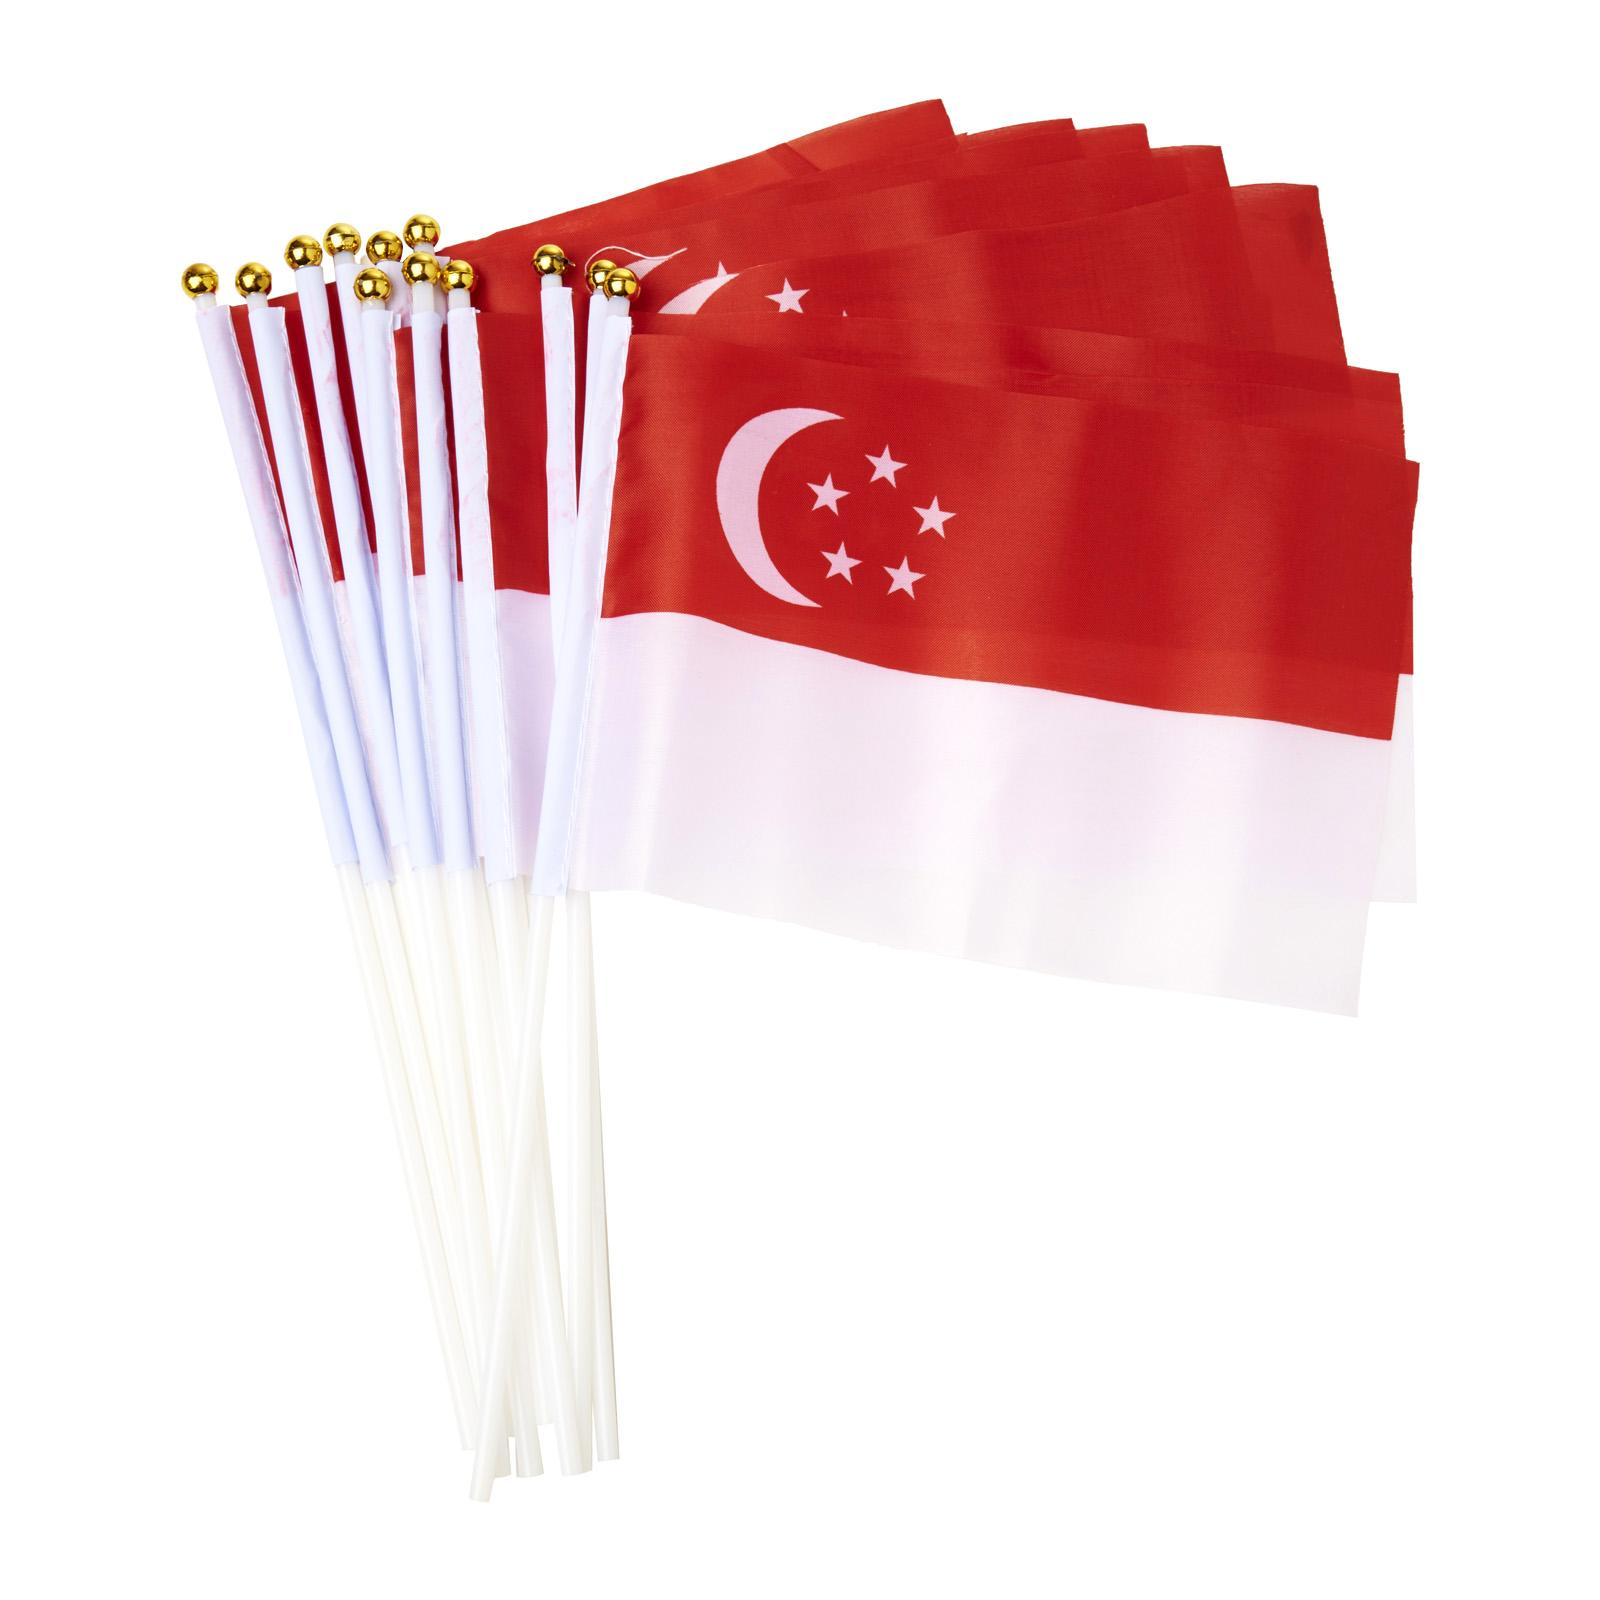 CGS Handheld Singapore Flag (12 Pcs) Decoration